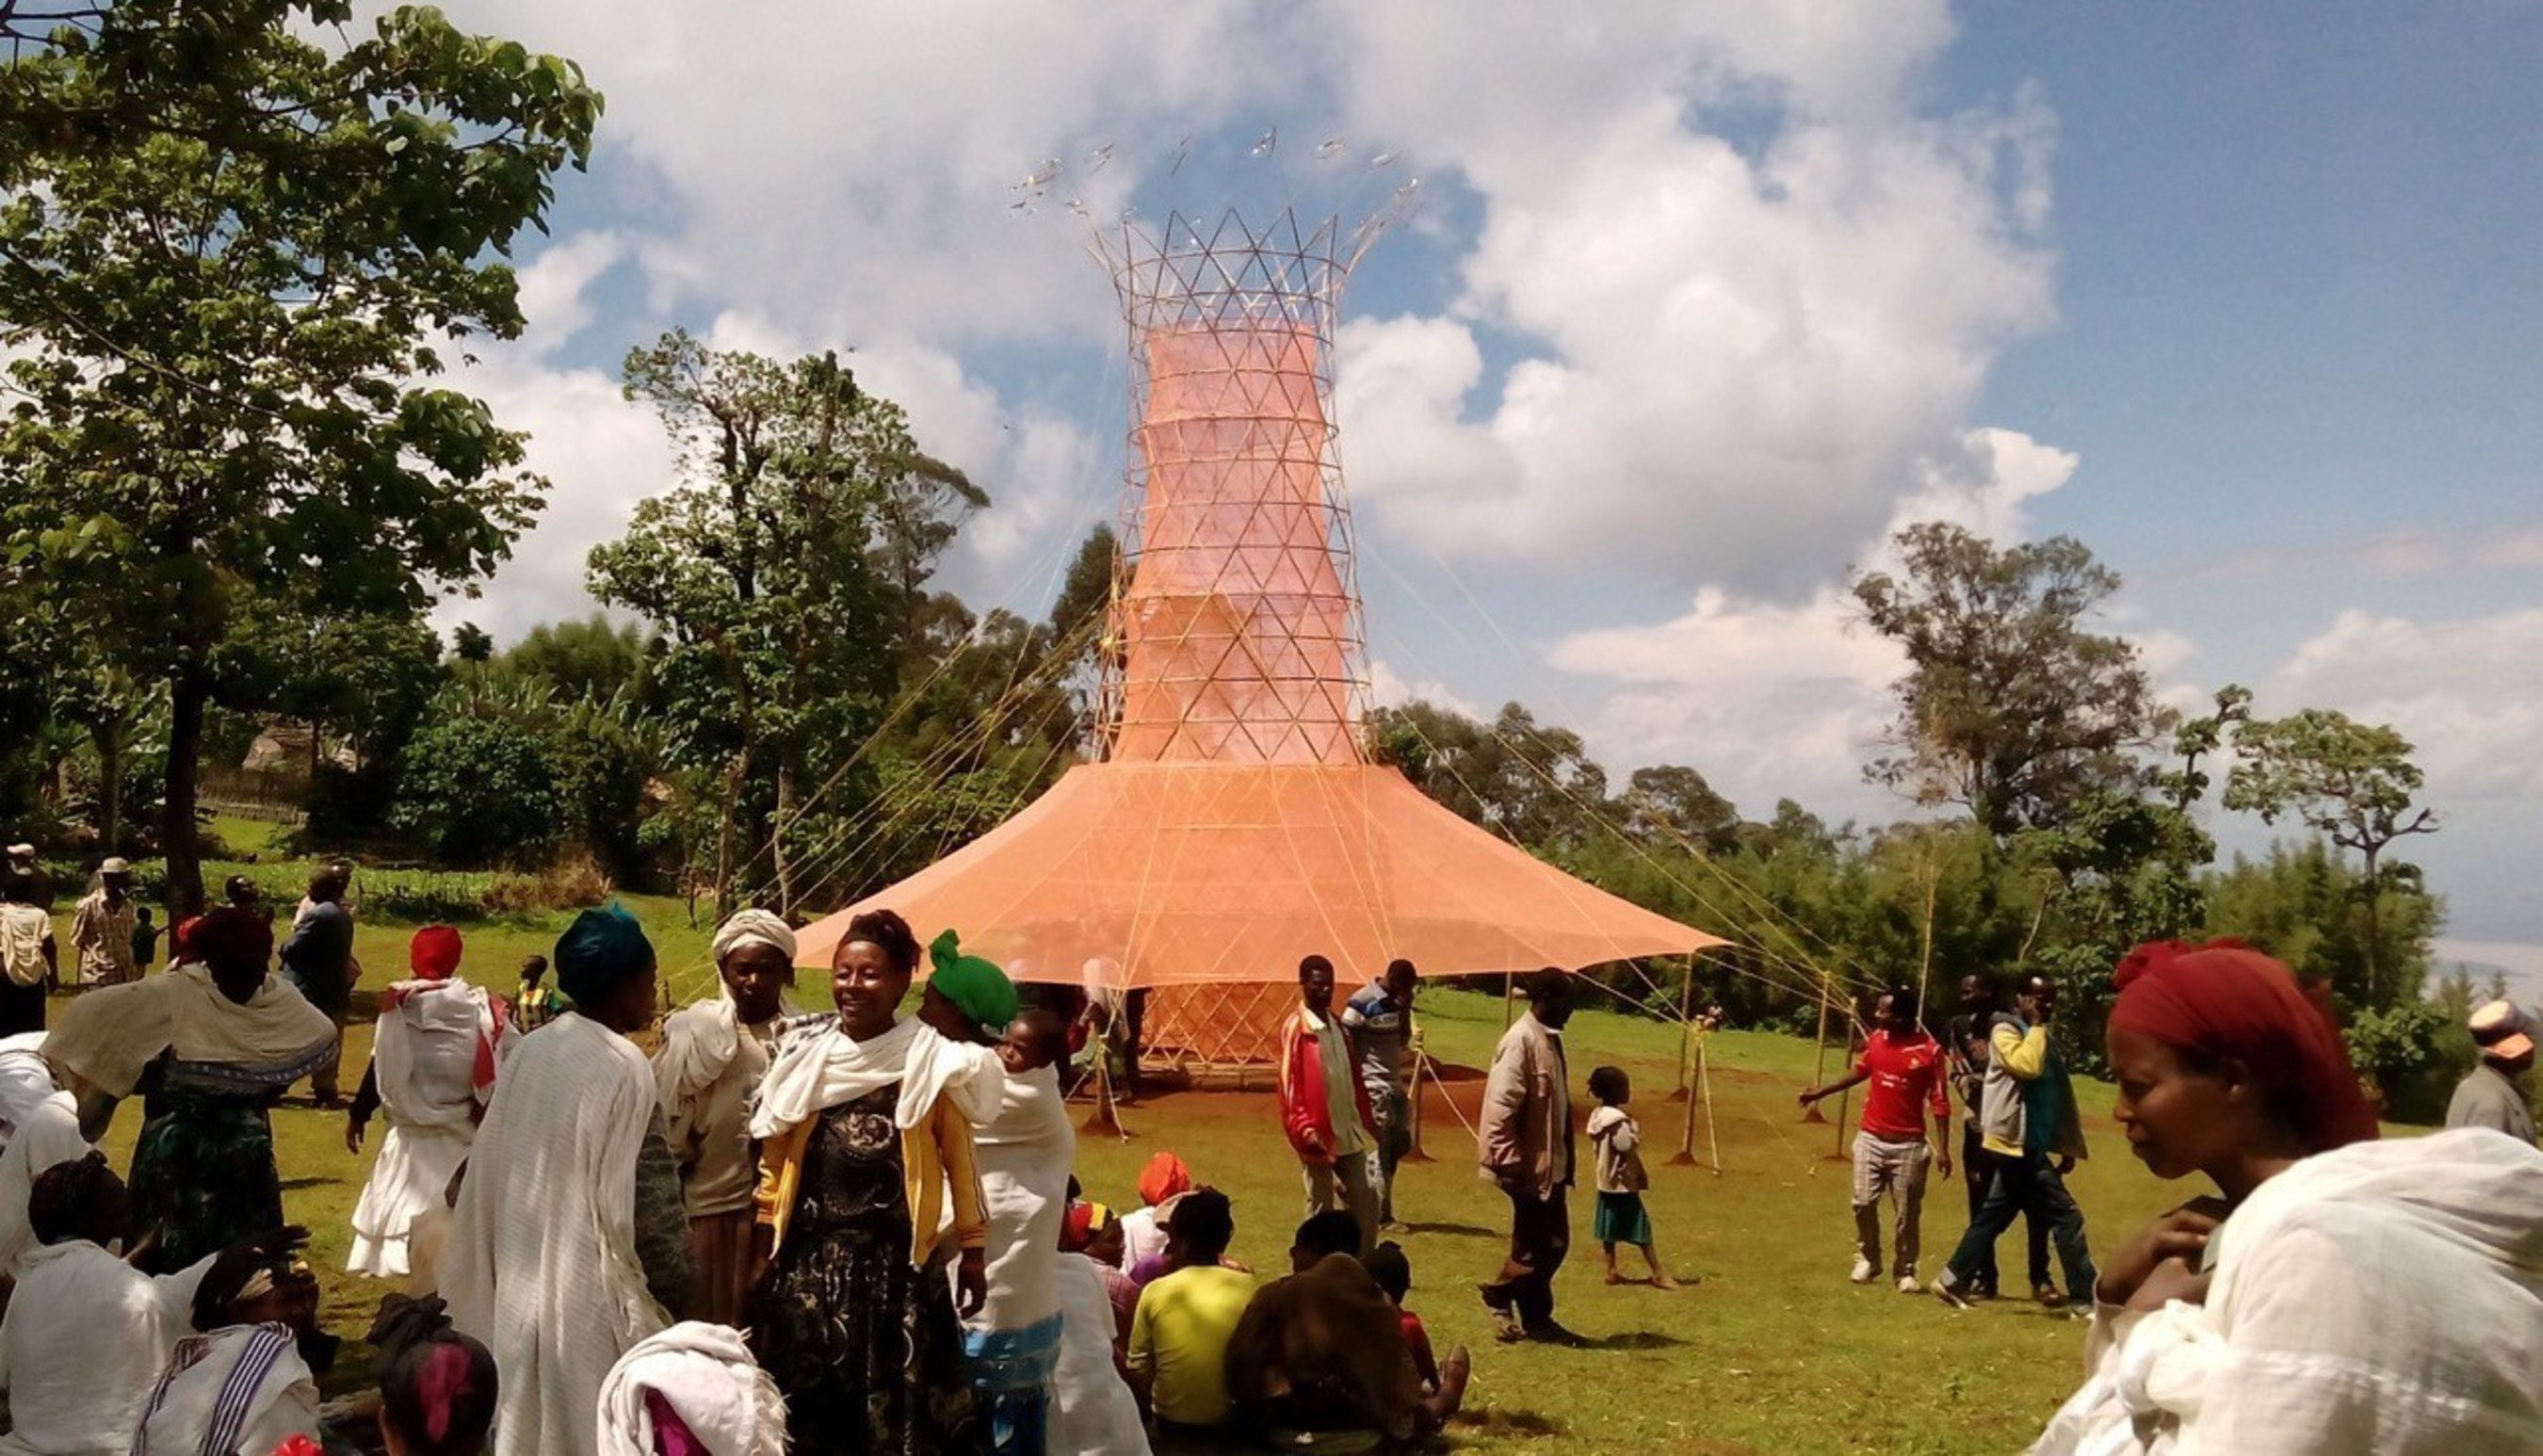 Onsite view of Warka Water (Ethiopia). Warka Water took home the WDIP 20152016 trophy at the WDC Taipei 2016 International Design Gala. Image courtesy WDC Taipei 2016.